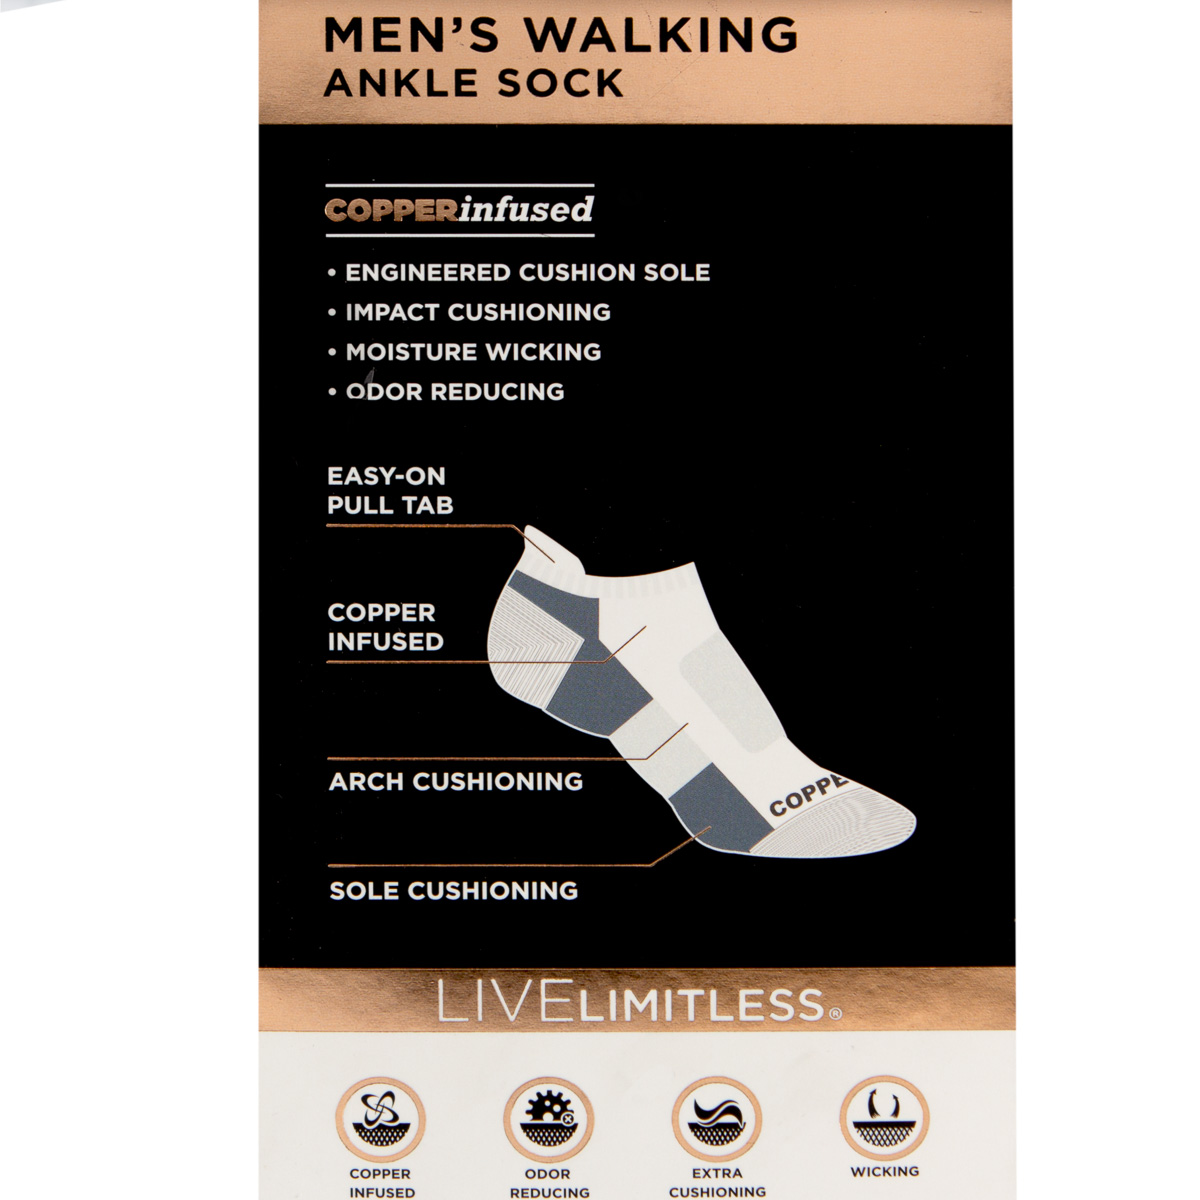 thumbnail 14 - 2-Pairs-Copper-Fit-Men-Walking-Ankle-Socks-Moisture-Wicking-Cushion-Compression